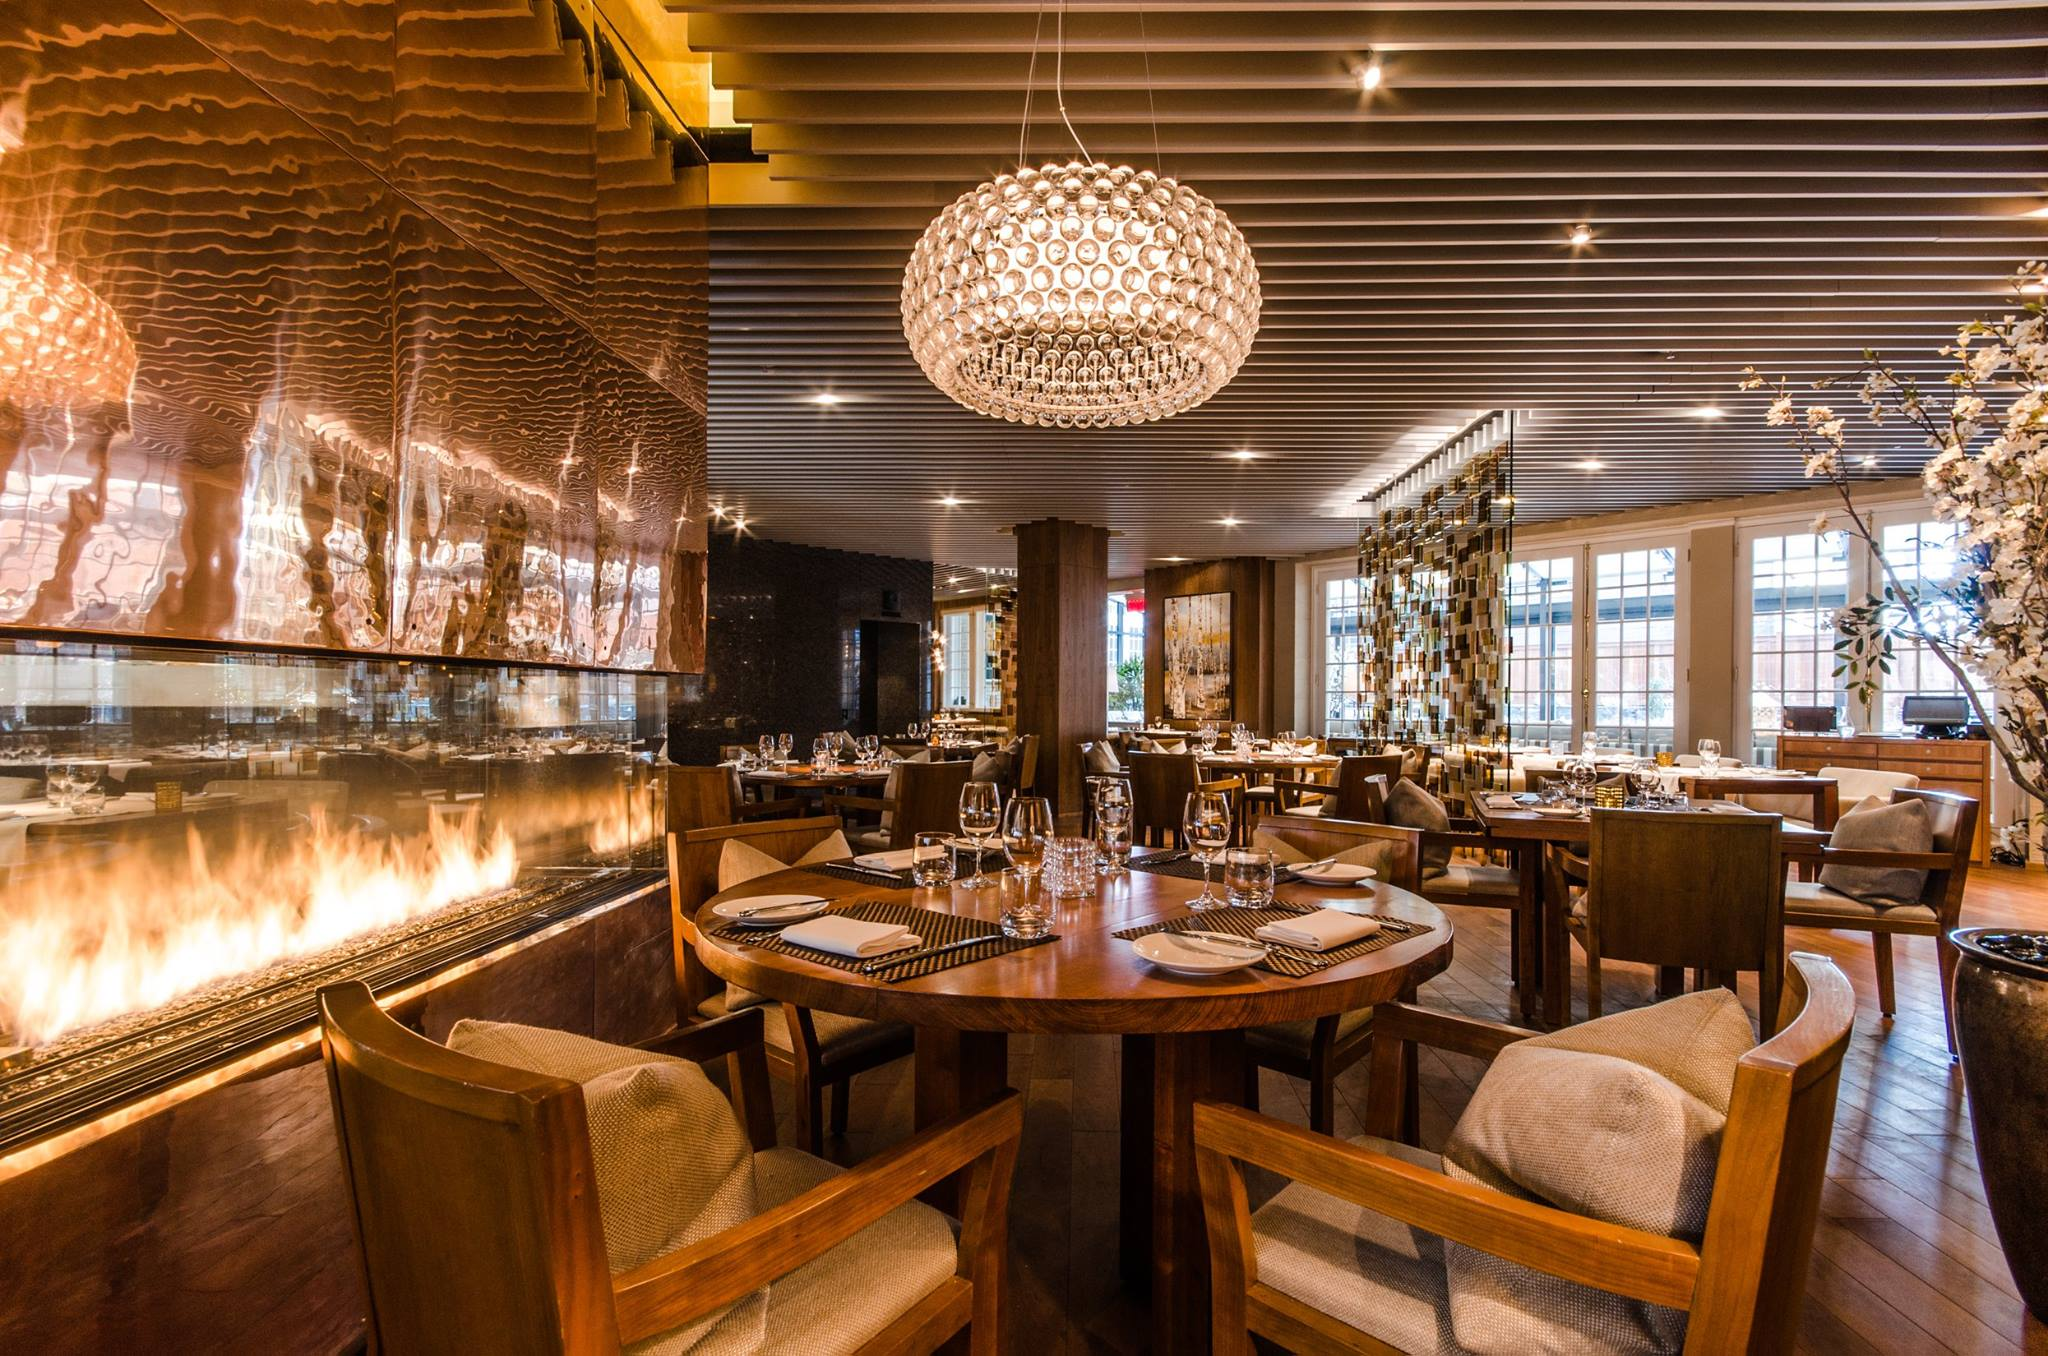 Montreal's Unmissable Hotel Restaurants and Bars